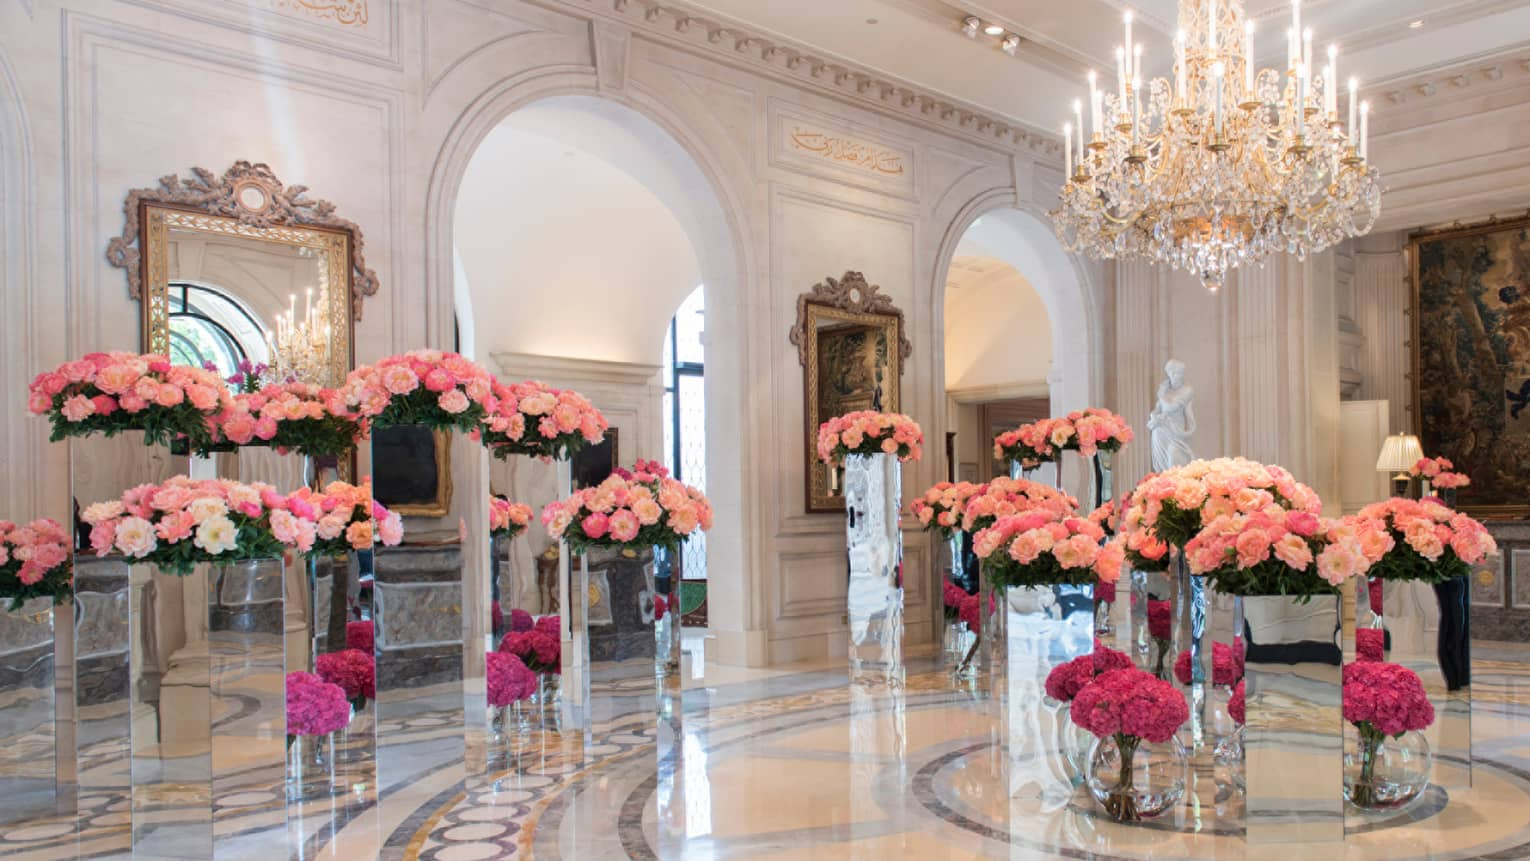 Four Seasons Hotel Paris marble lobby with gleaming floors, large pink floral arrangements